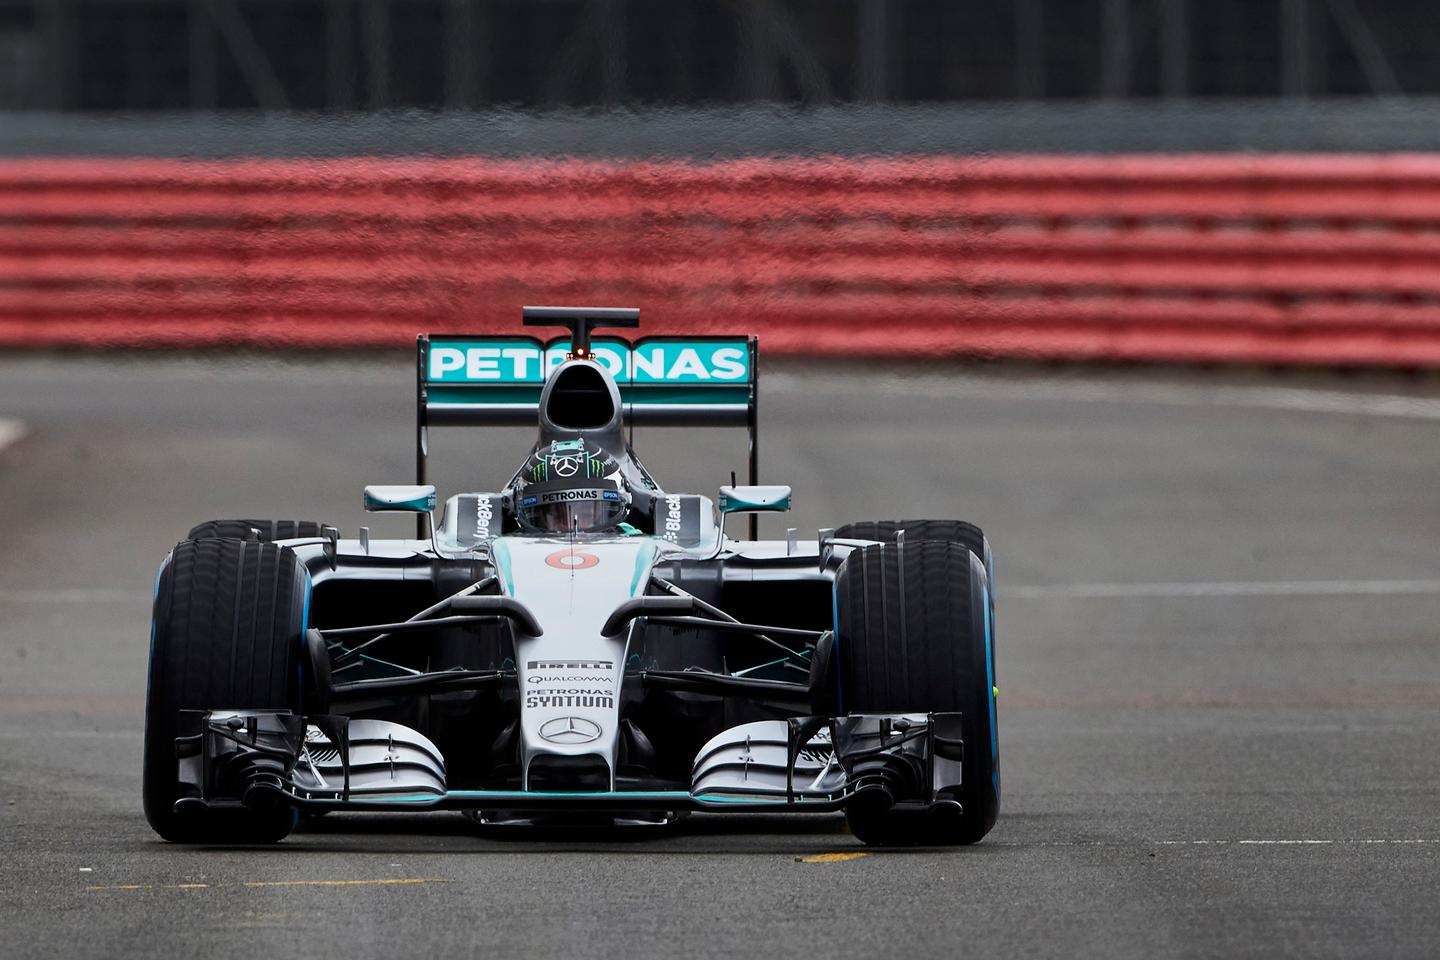 Nico Rosberg shakes down the latest Mercedes F1 challenger